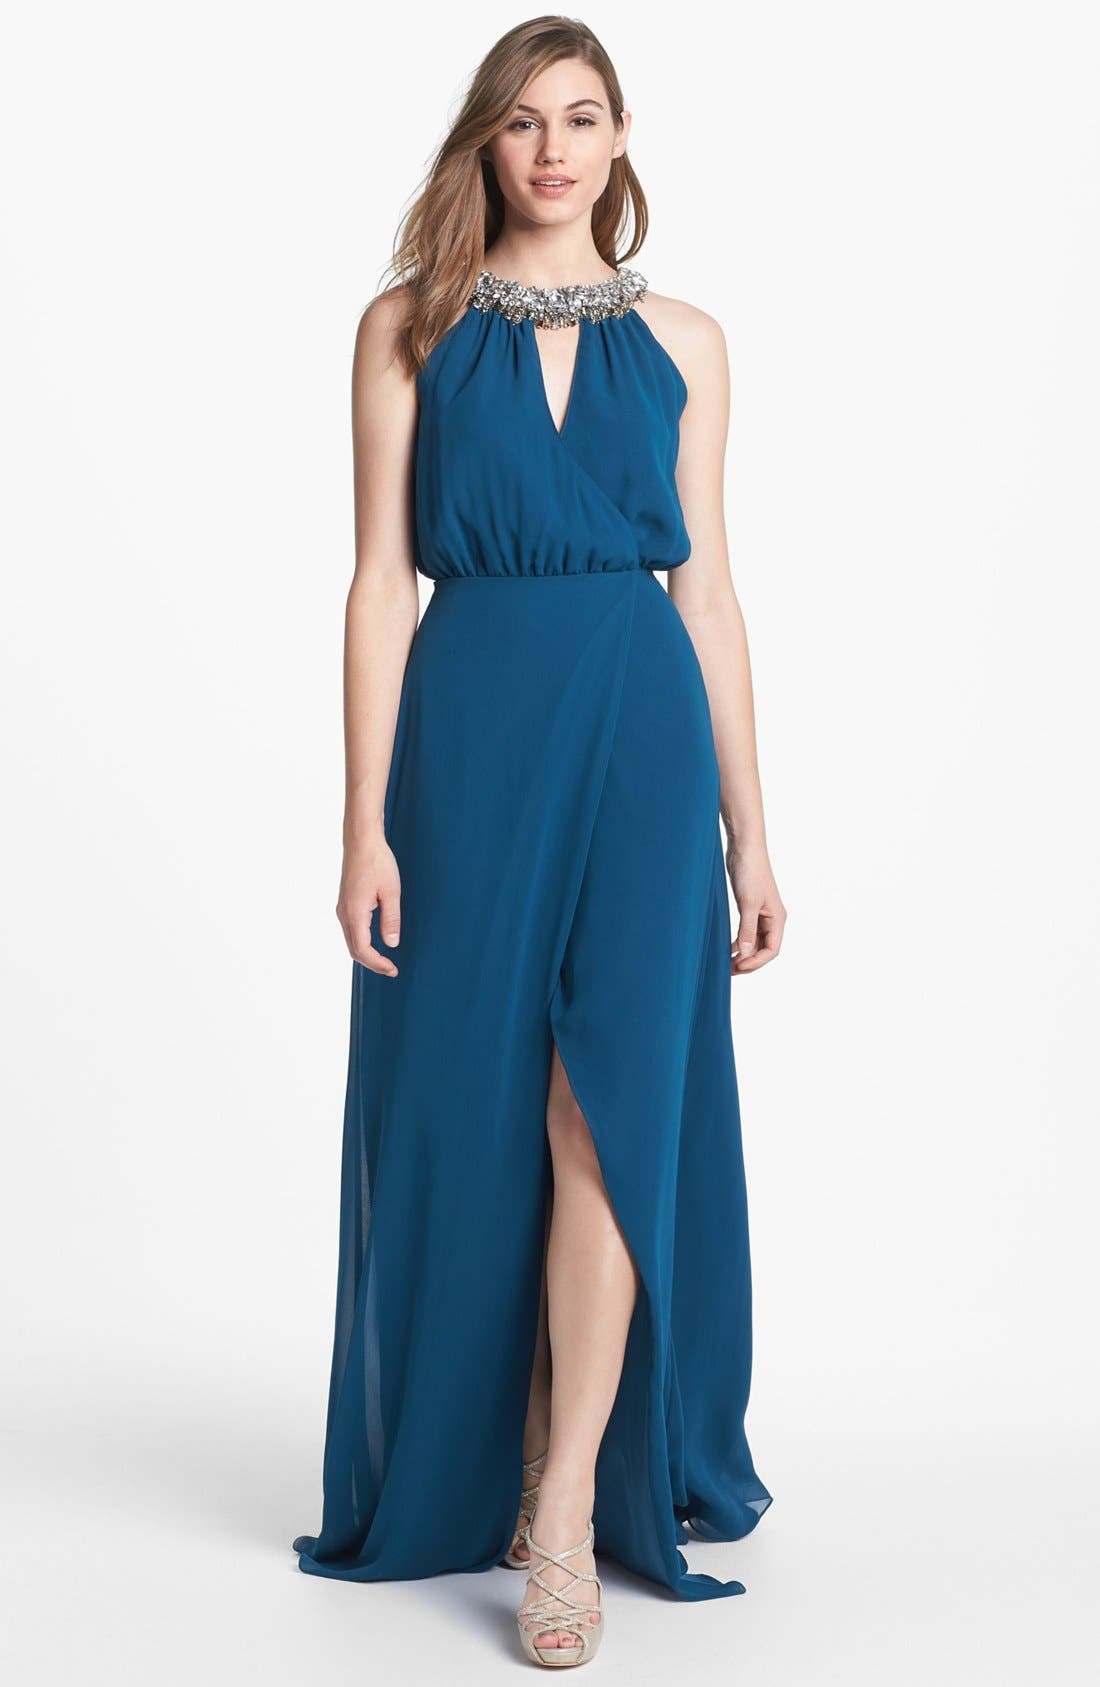 Main Image - ERIN erin fetherston Embellished Faux Wrap Chiffon Gown